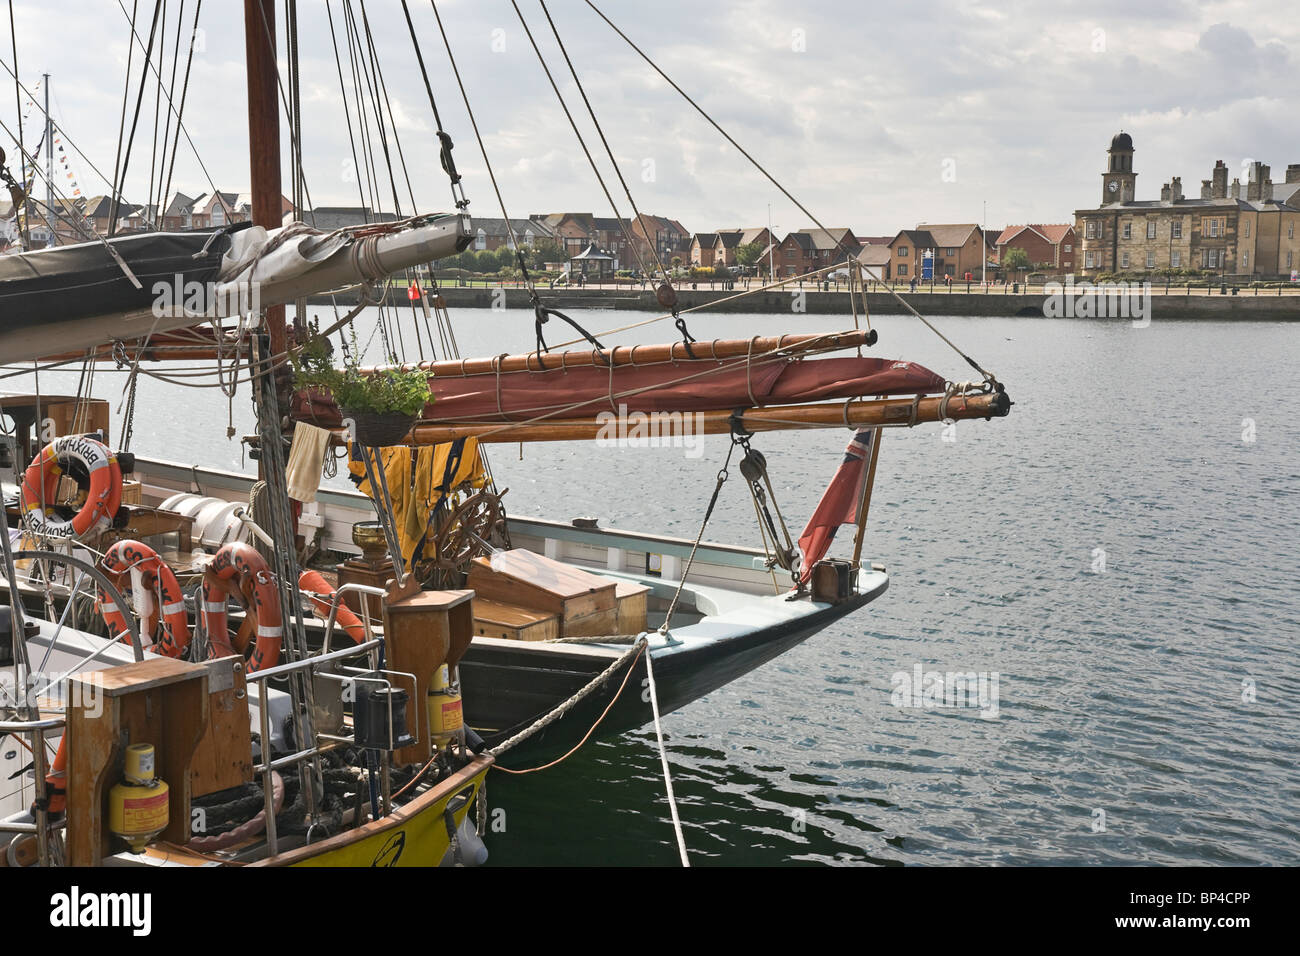 Looking over Hartlepool Marina across the sterns of the Gaff Ketch Provident and the BM Ketch James Cook. Tall ships - Stock Image